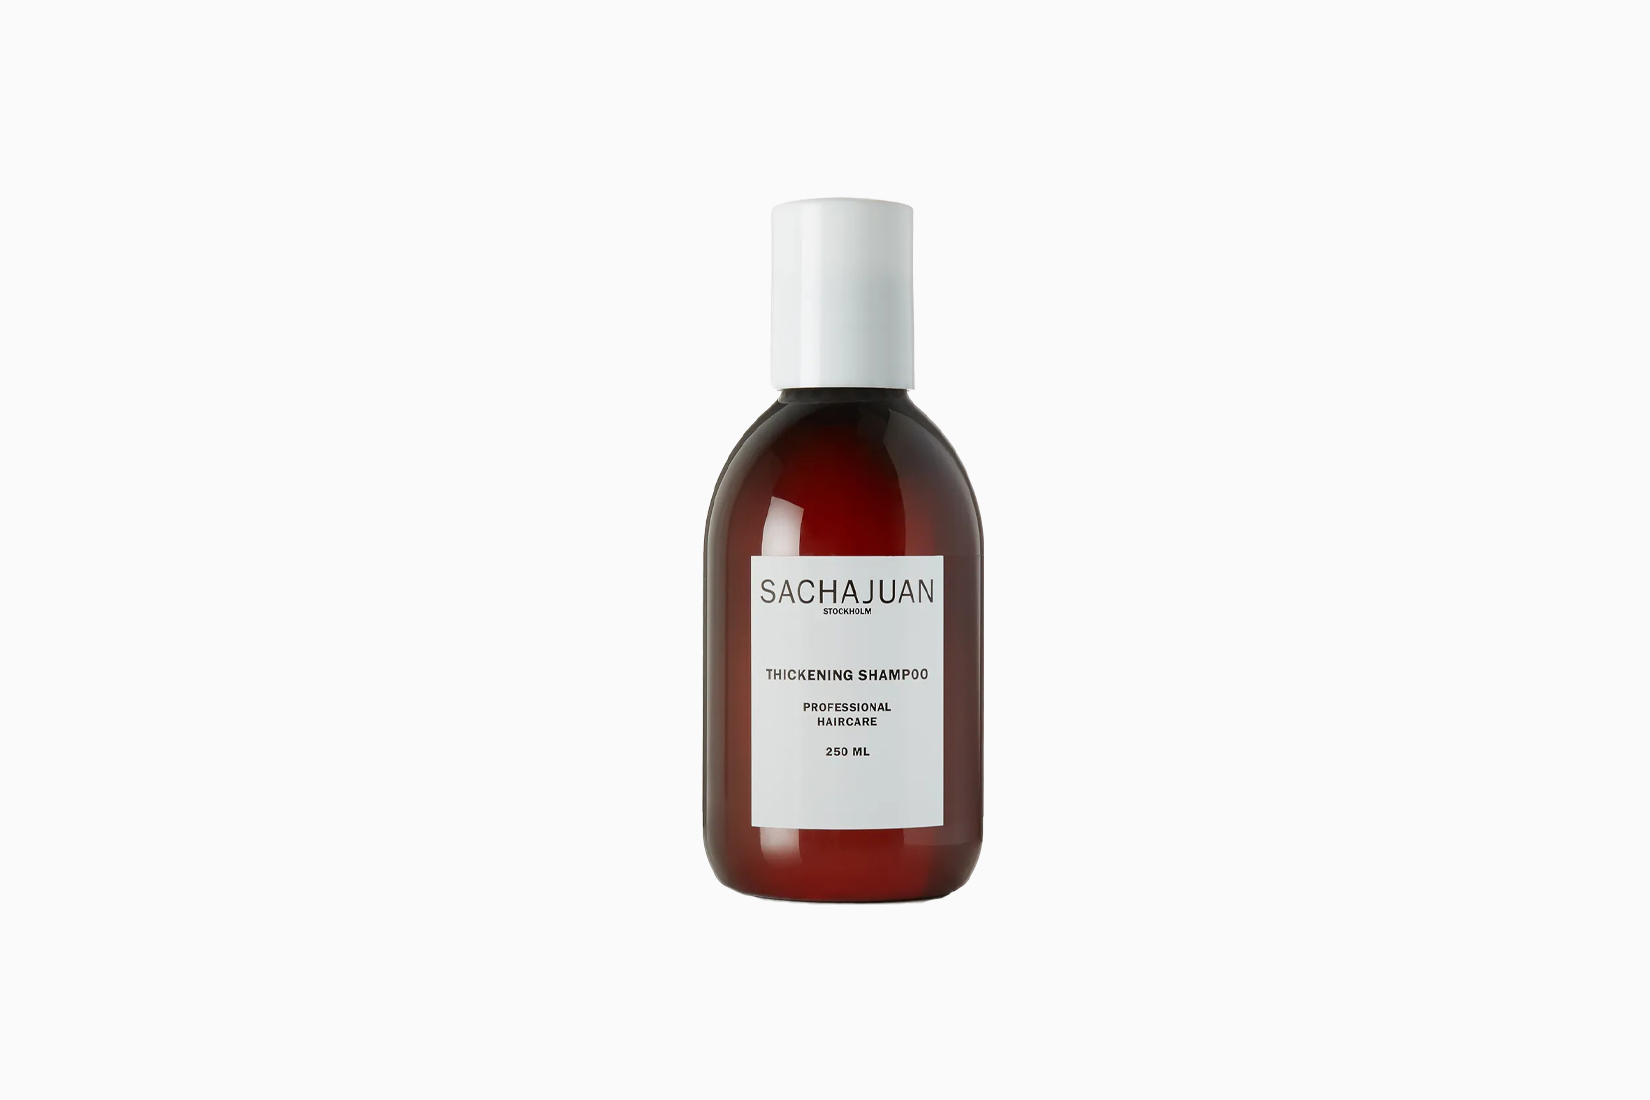 best hair growth shampoo women sachajuan review - Luxe Digital